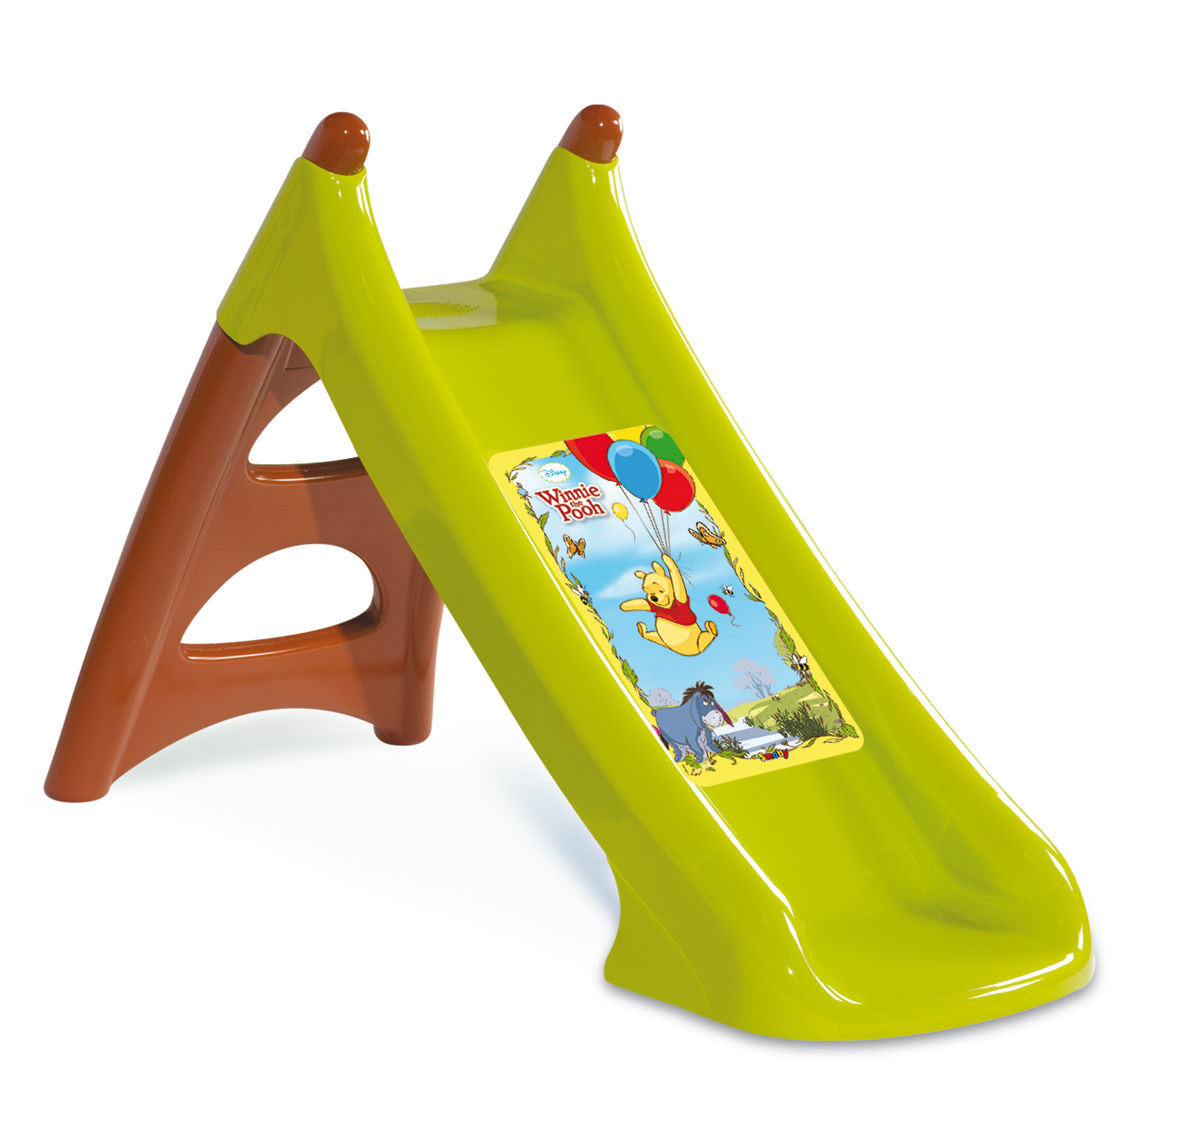 toboggan xs winnie l 39 ourson jeux et jouets smoby avenue des jeux. Black Bedroom Furniture Sets. Home Design Ideas